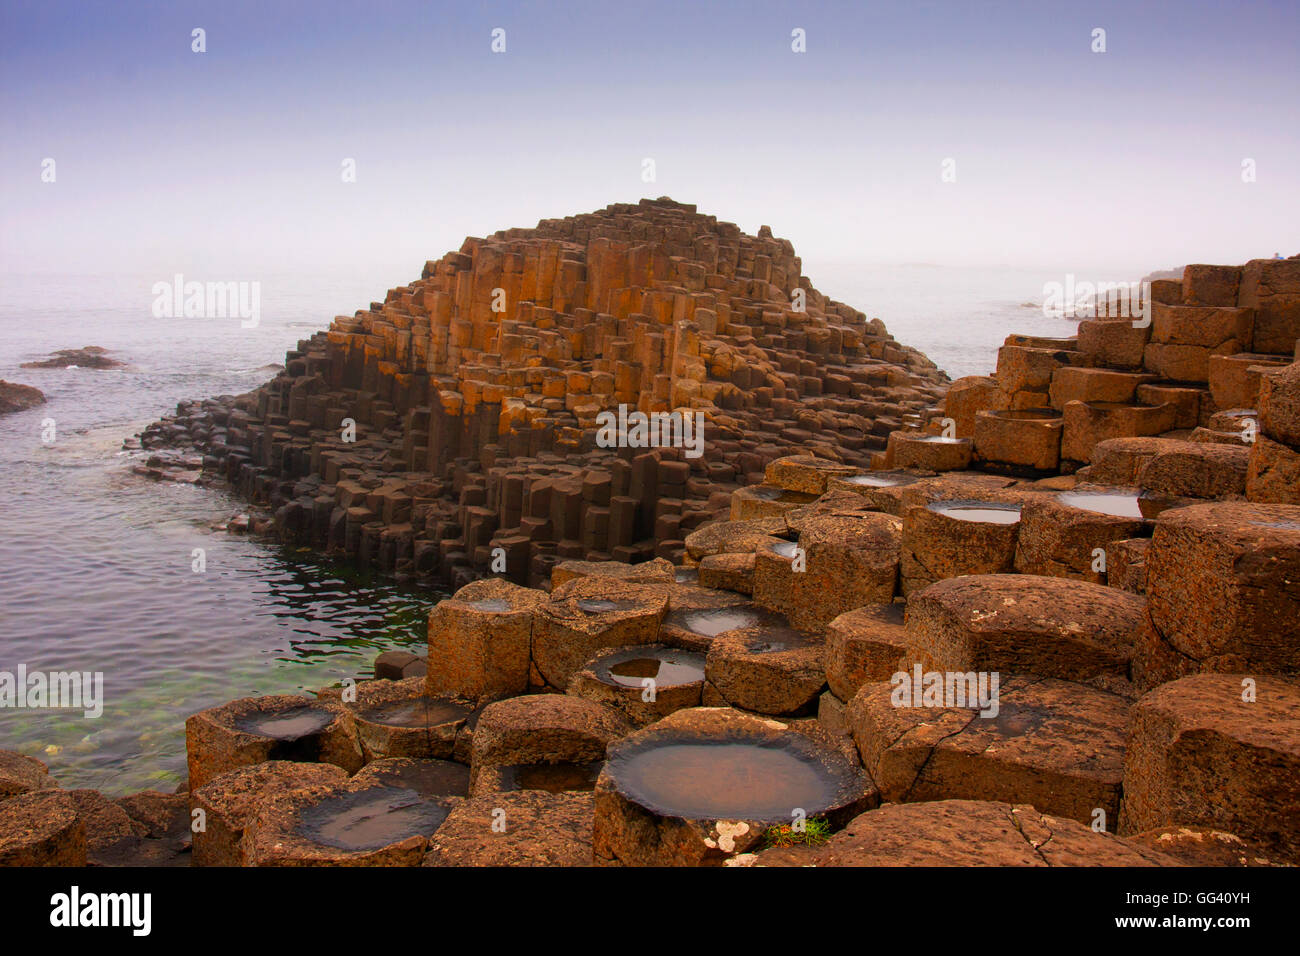 Giant's Causeway Moyle Northern Ireland - Stock Image